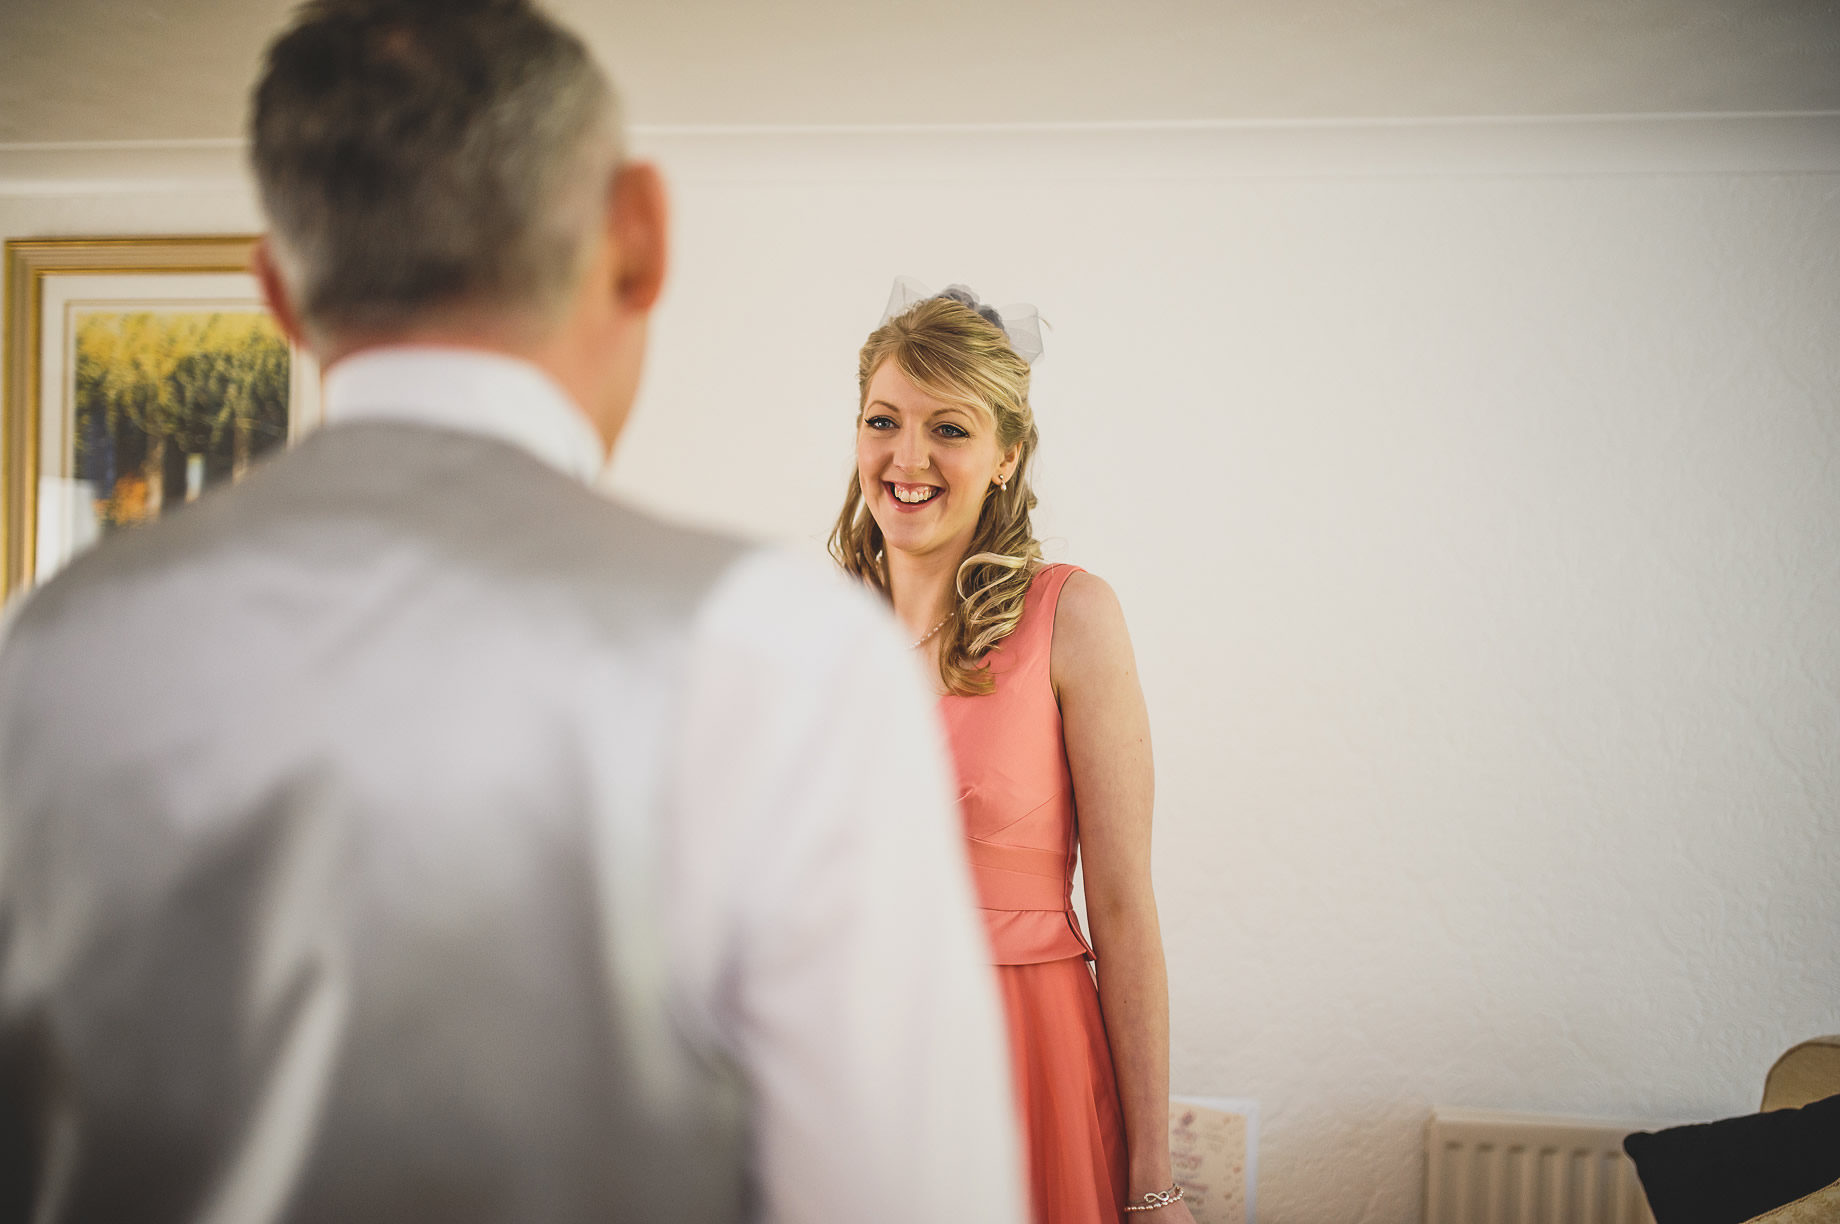 Charlotte and Will's Wedding at Mitton Hall - A Preview 004